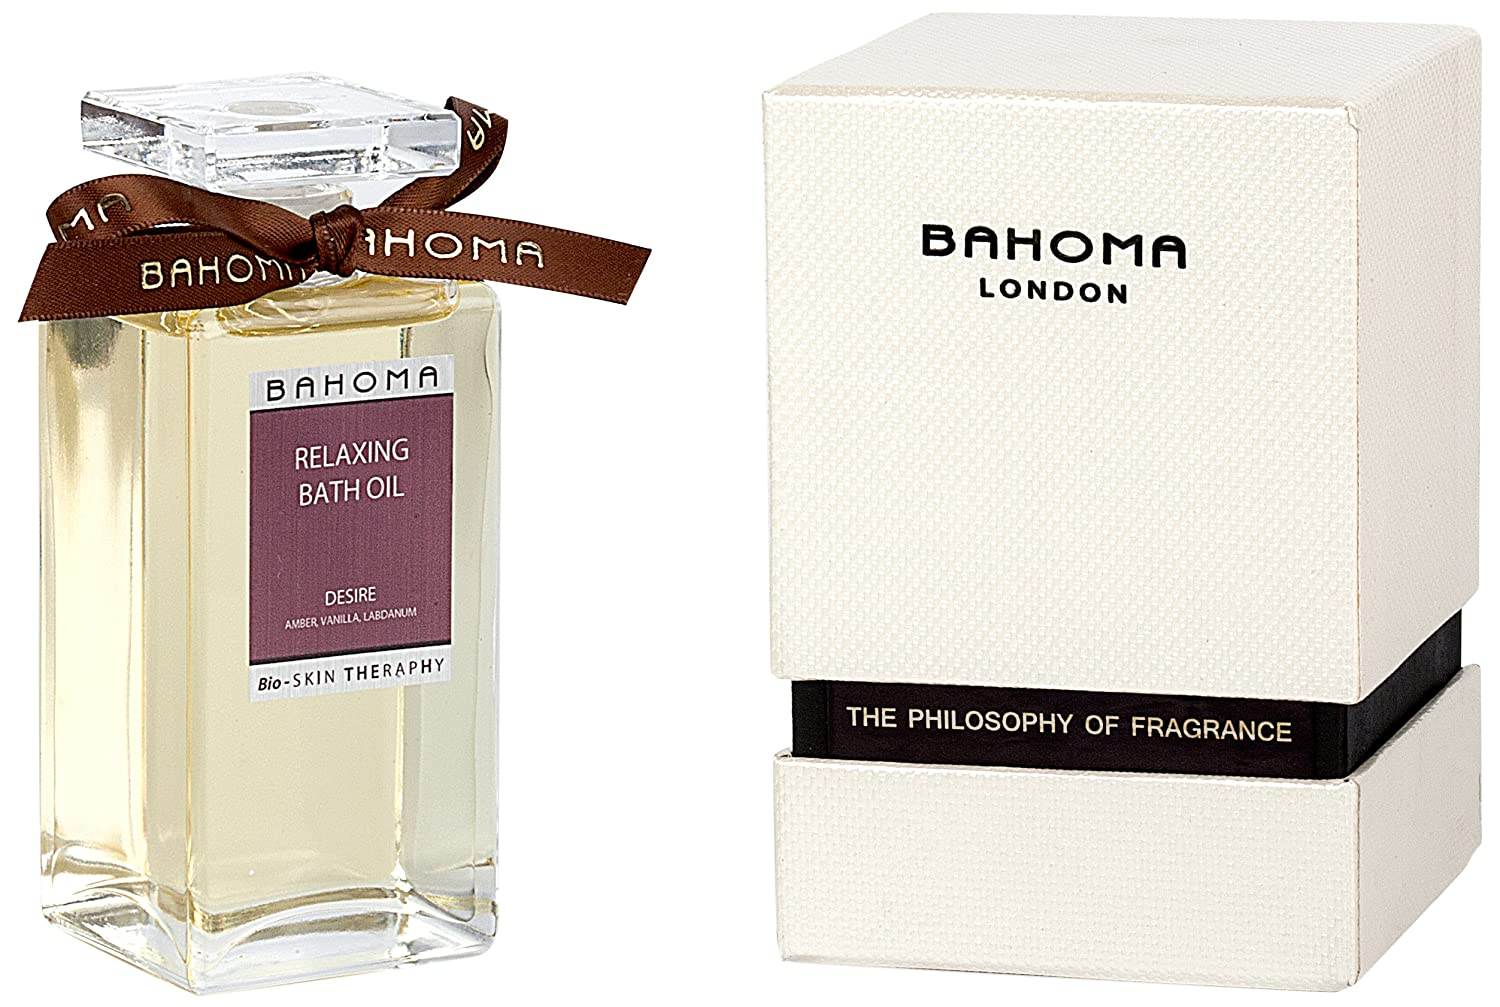 Bahoma Desire Luxurious Gift Box with a 100 ml Bath Oil in a Glass Bottle Bahoma Ltd 307-RB-540-410